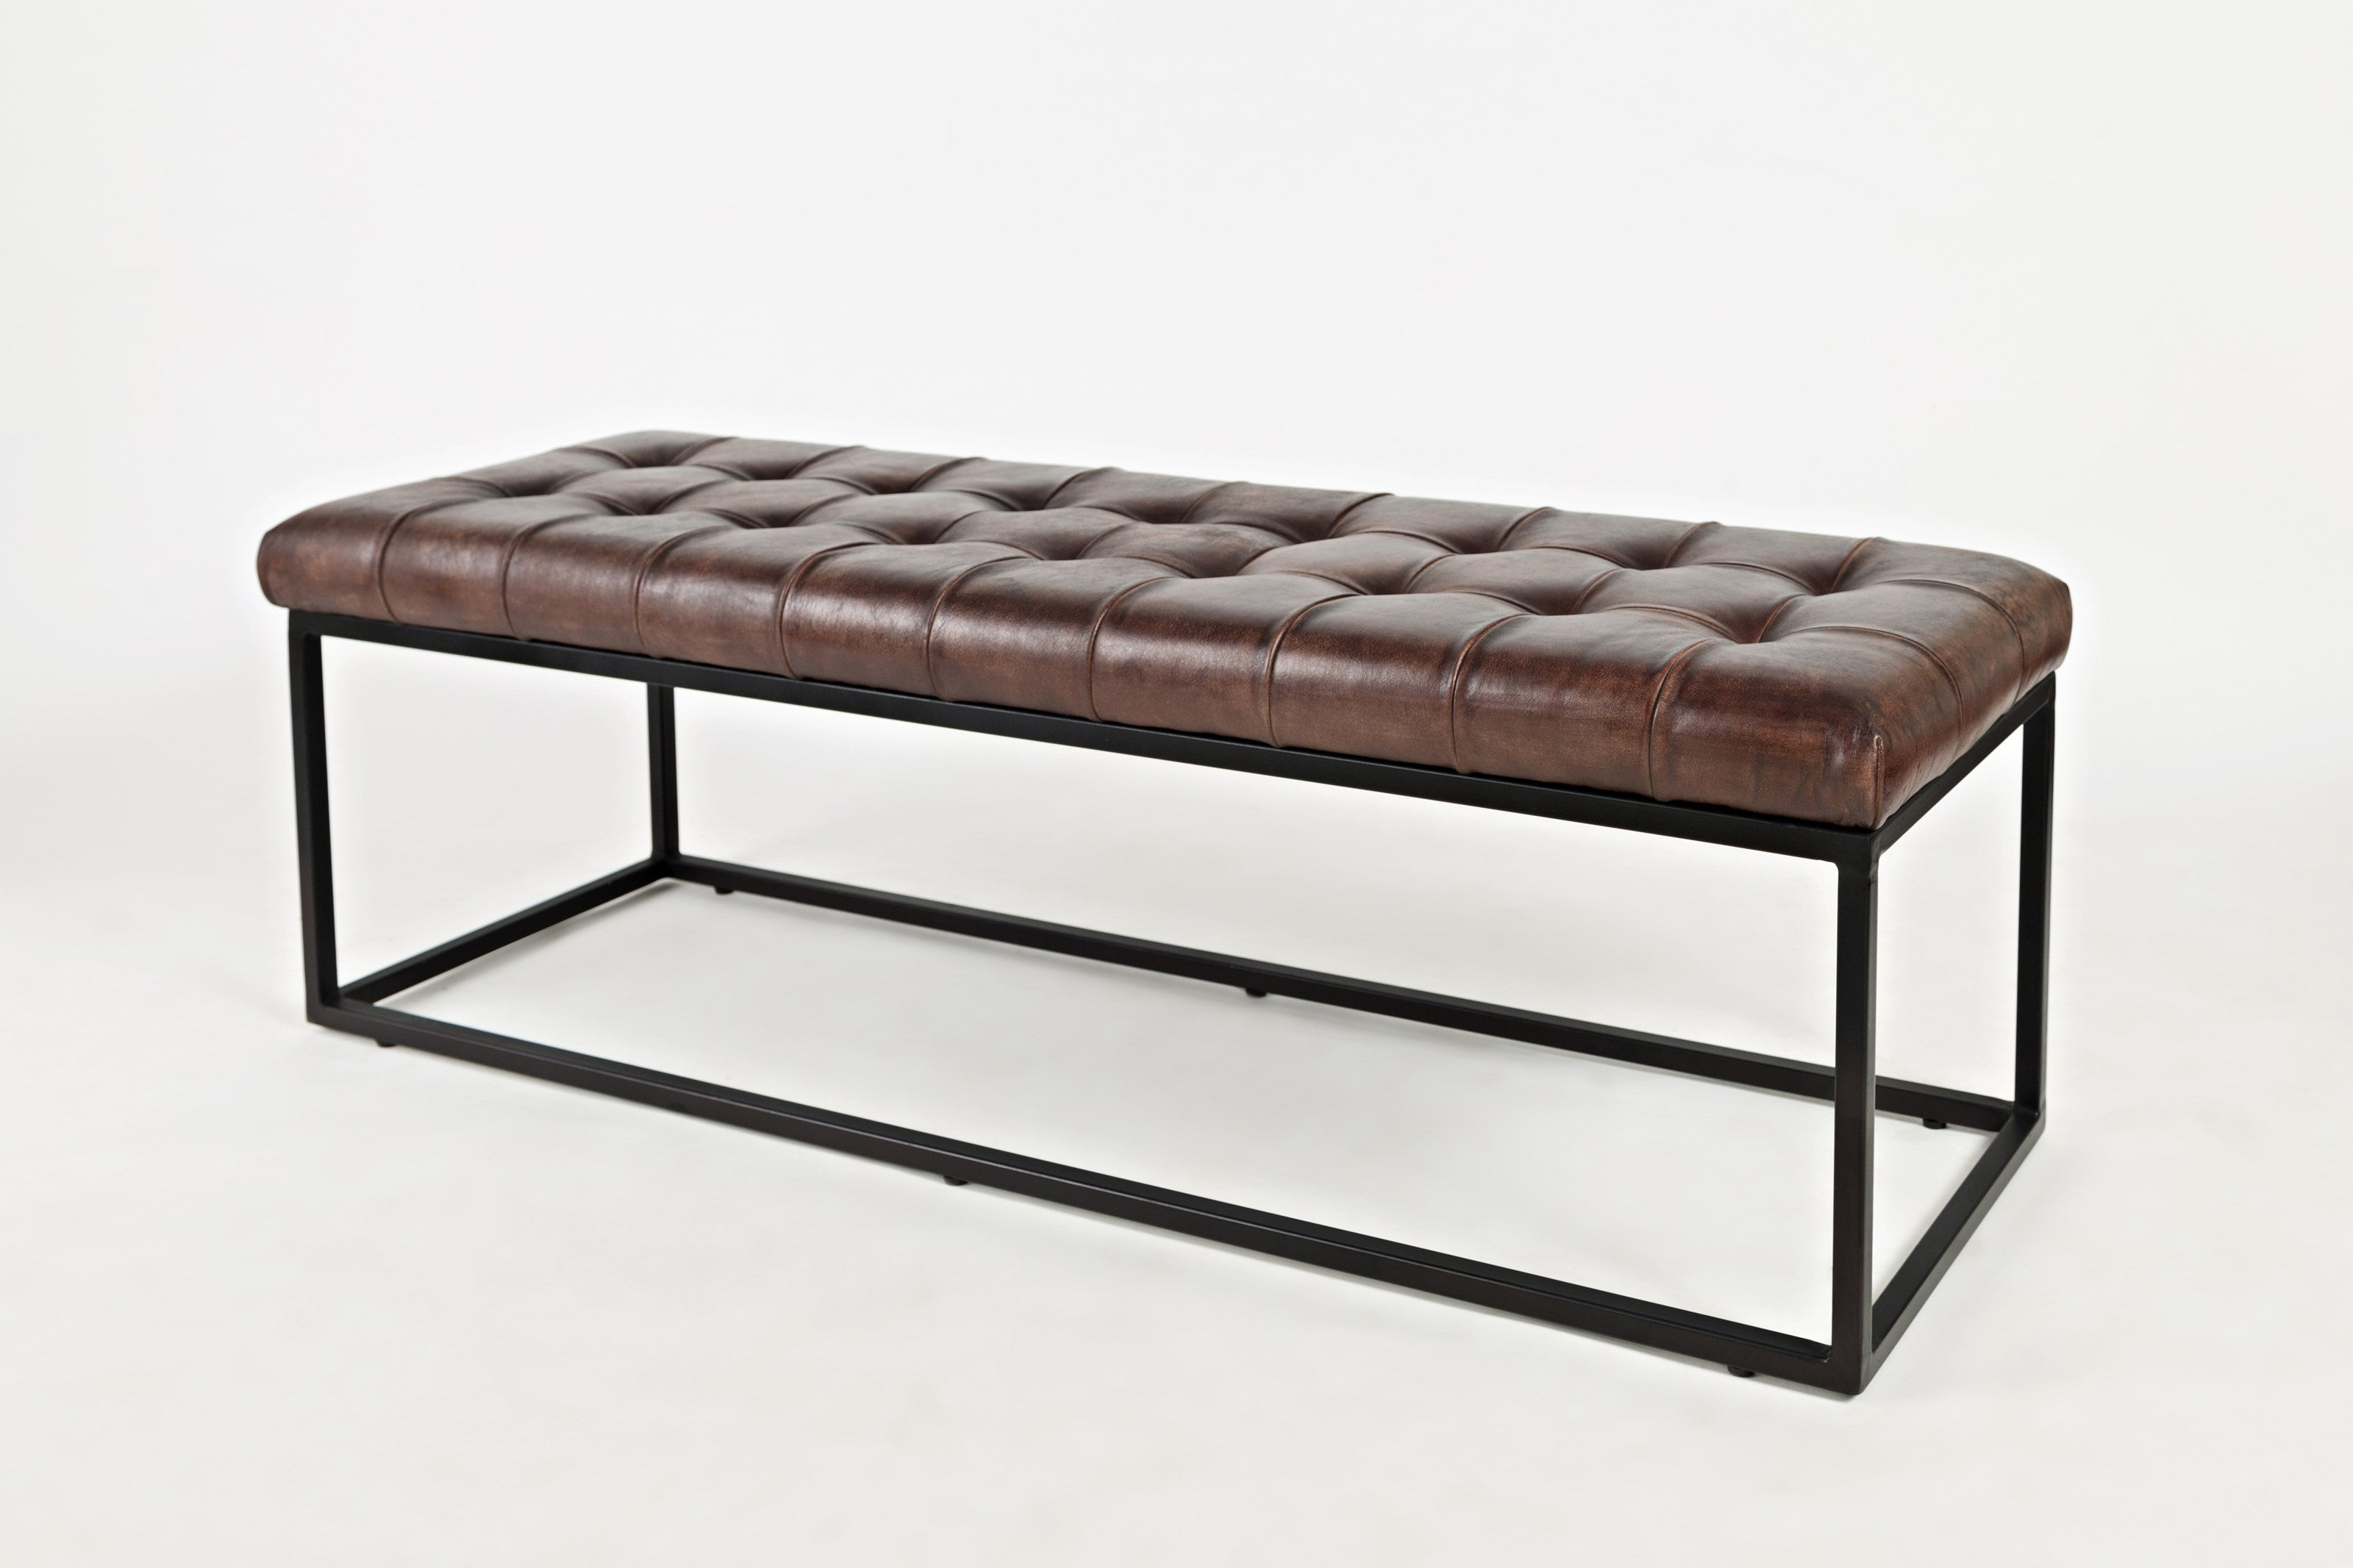 Handmade Leather Ottoman with Modern Base - Industrial Brown - Lifestyle Furniture